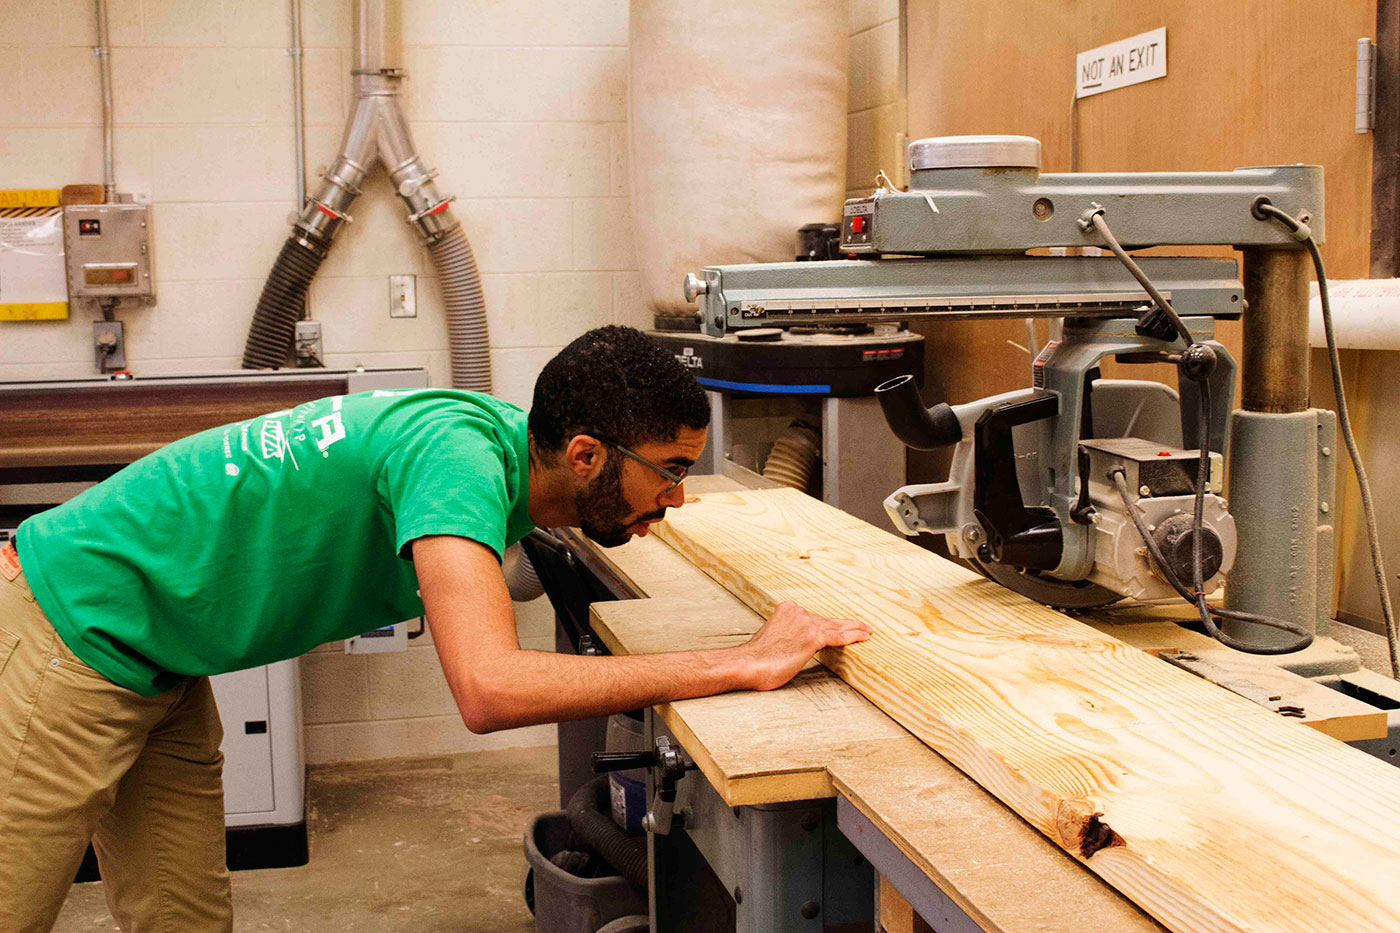 Third-year student Malik Vaughan, a volunteer with Growing for CHANGE, cuts wood for one of the garden boxes. Vaughan volunteered through the National Organization of Minority Architecture Students. (Photo courtesy of Shantell Bingham.)